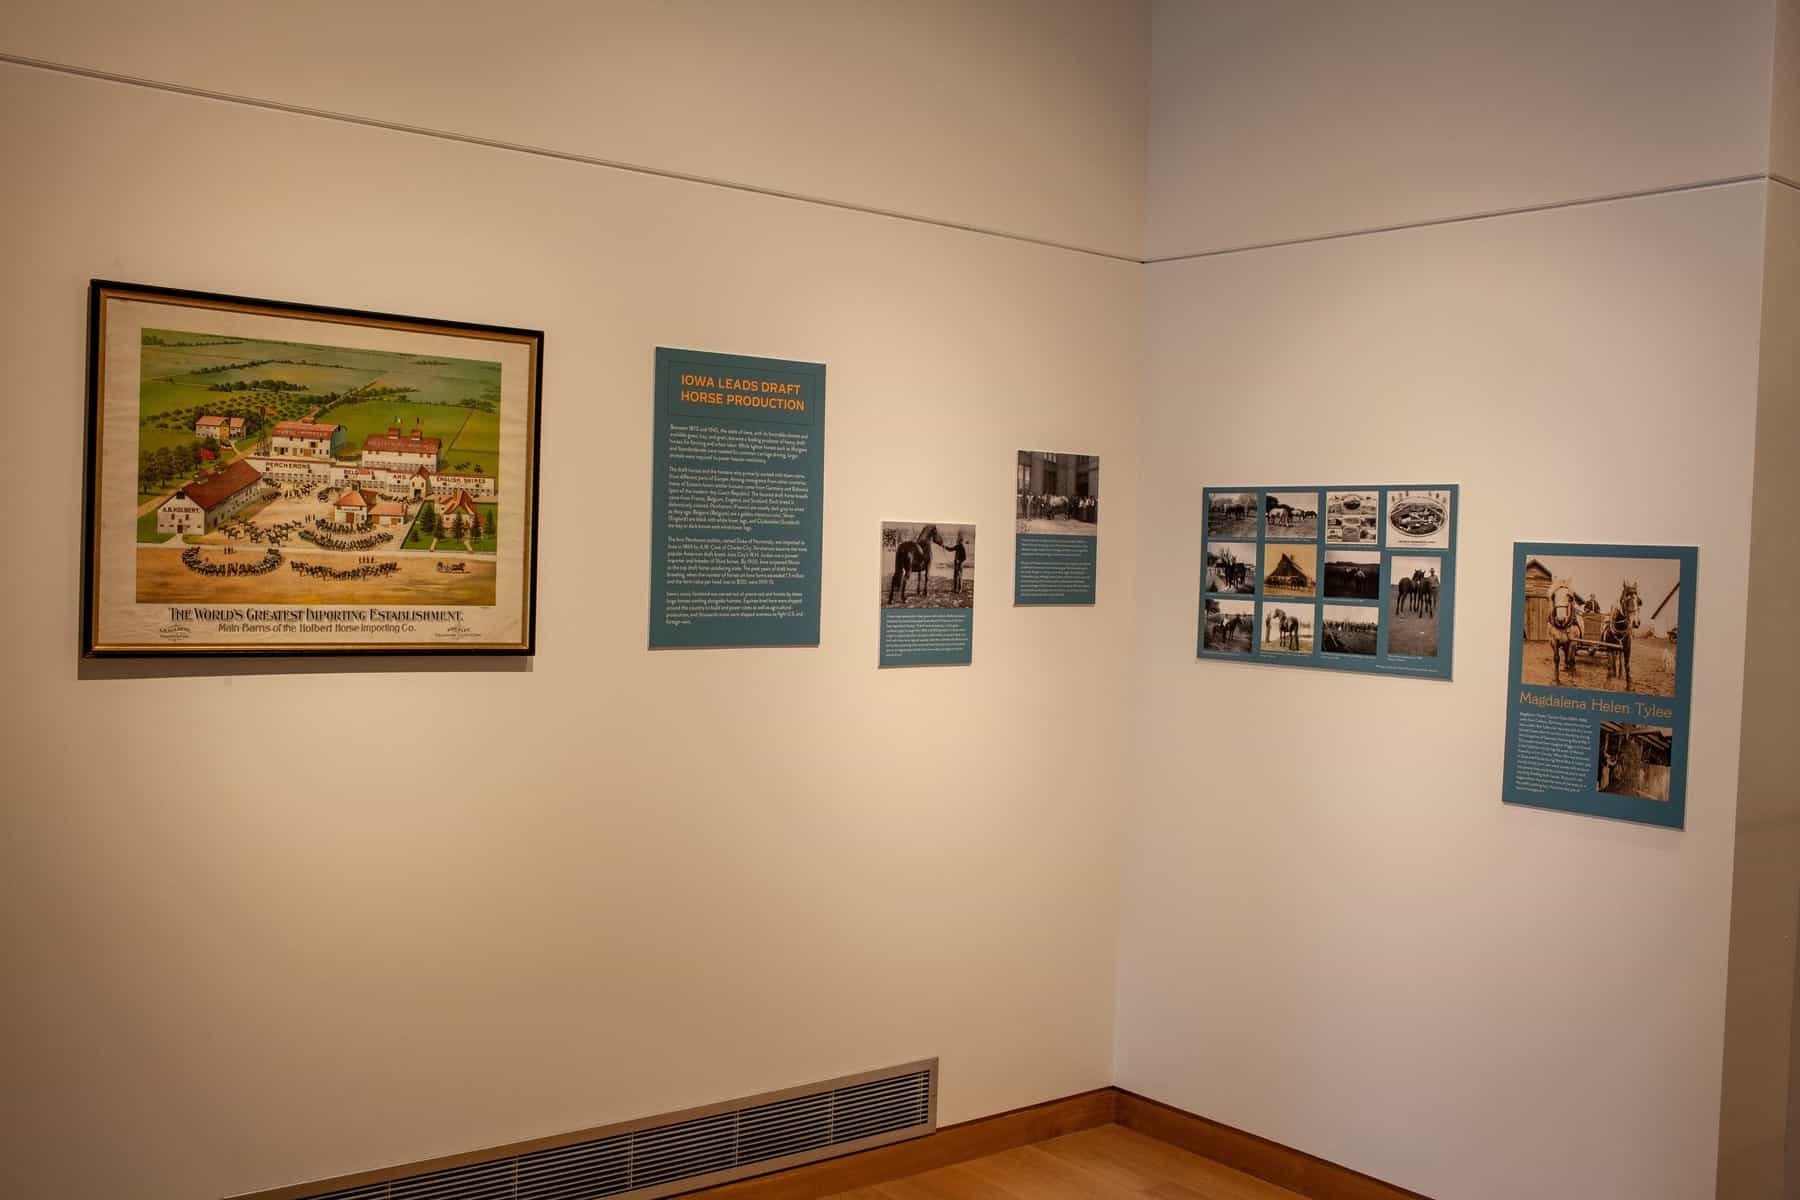 Several panels with images and text are mounted to the gallery wall. This section focuses on horse breeding in Iowa, and panel text and information about the photos is listed in the body of this page.